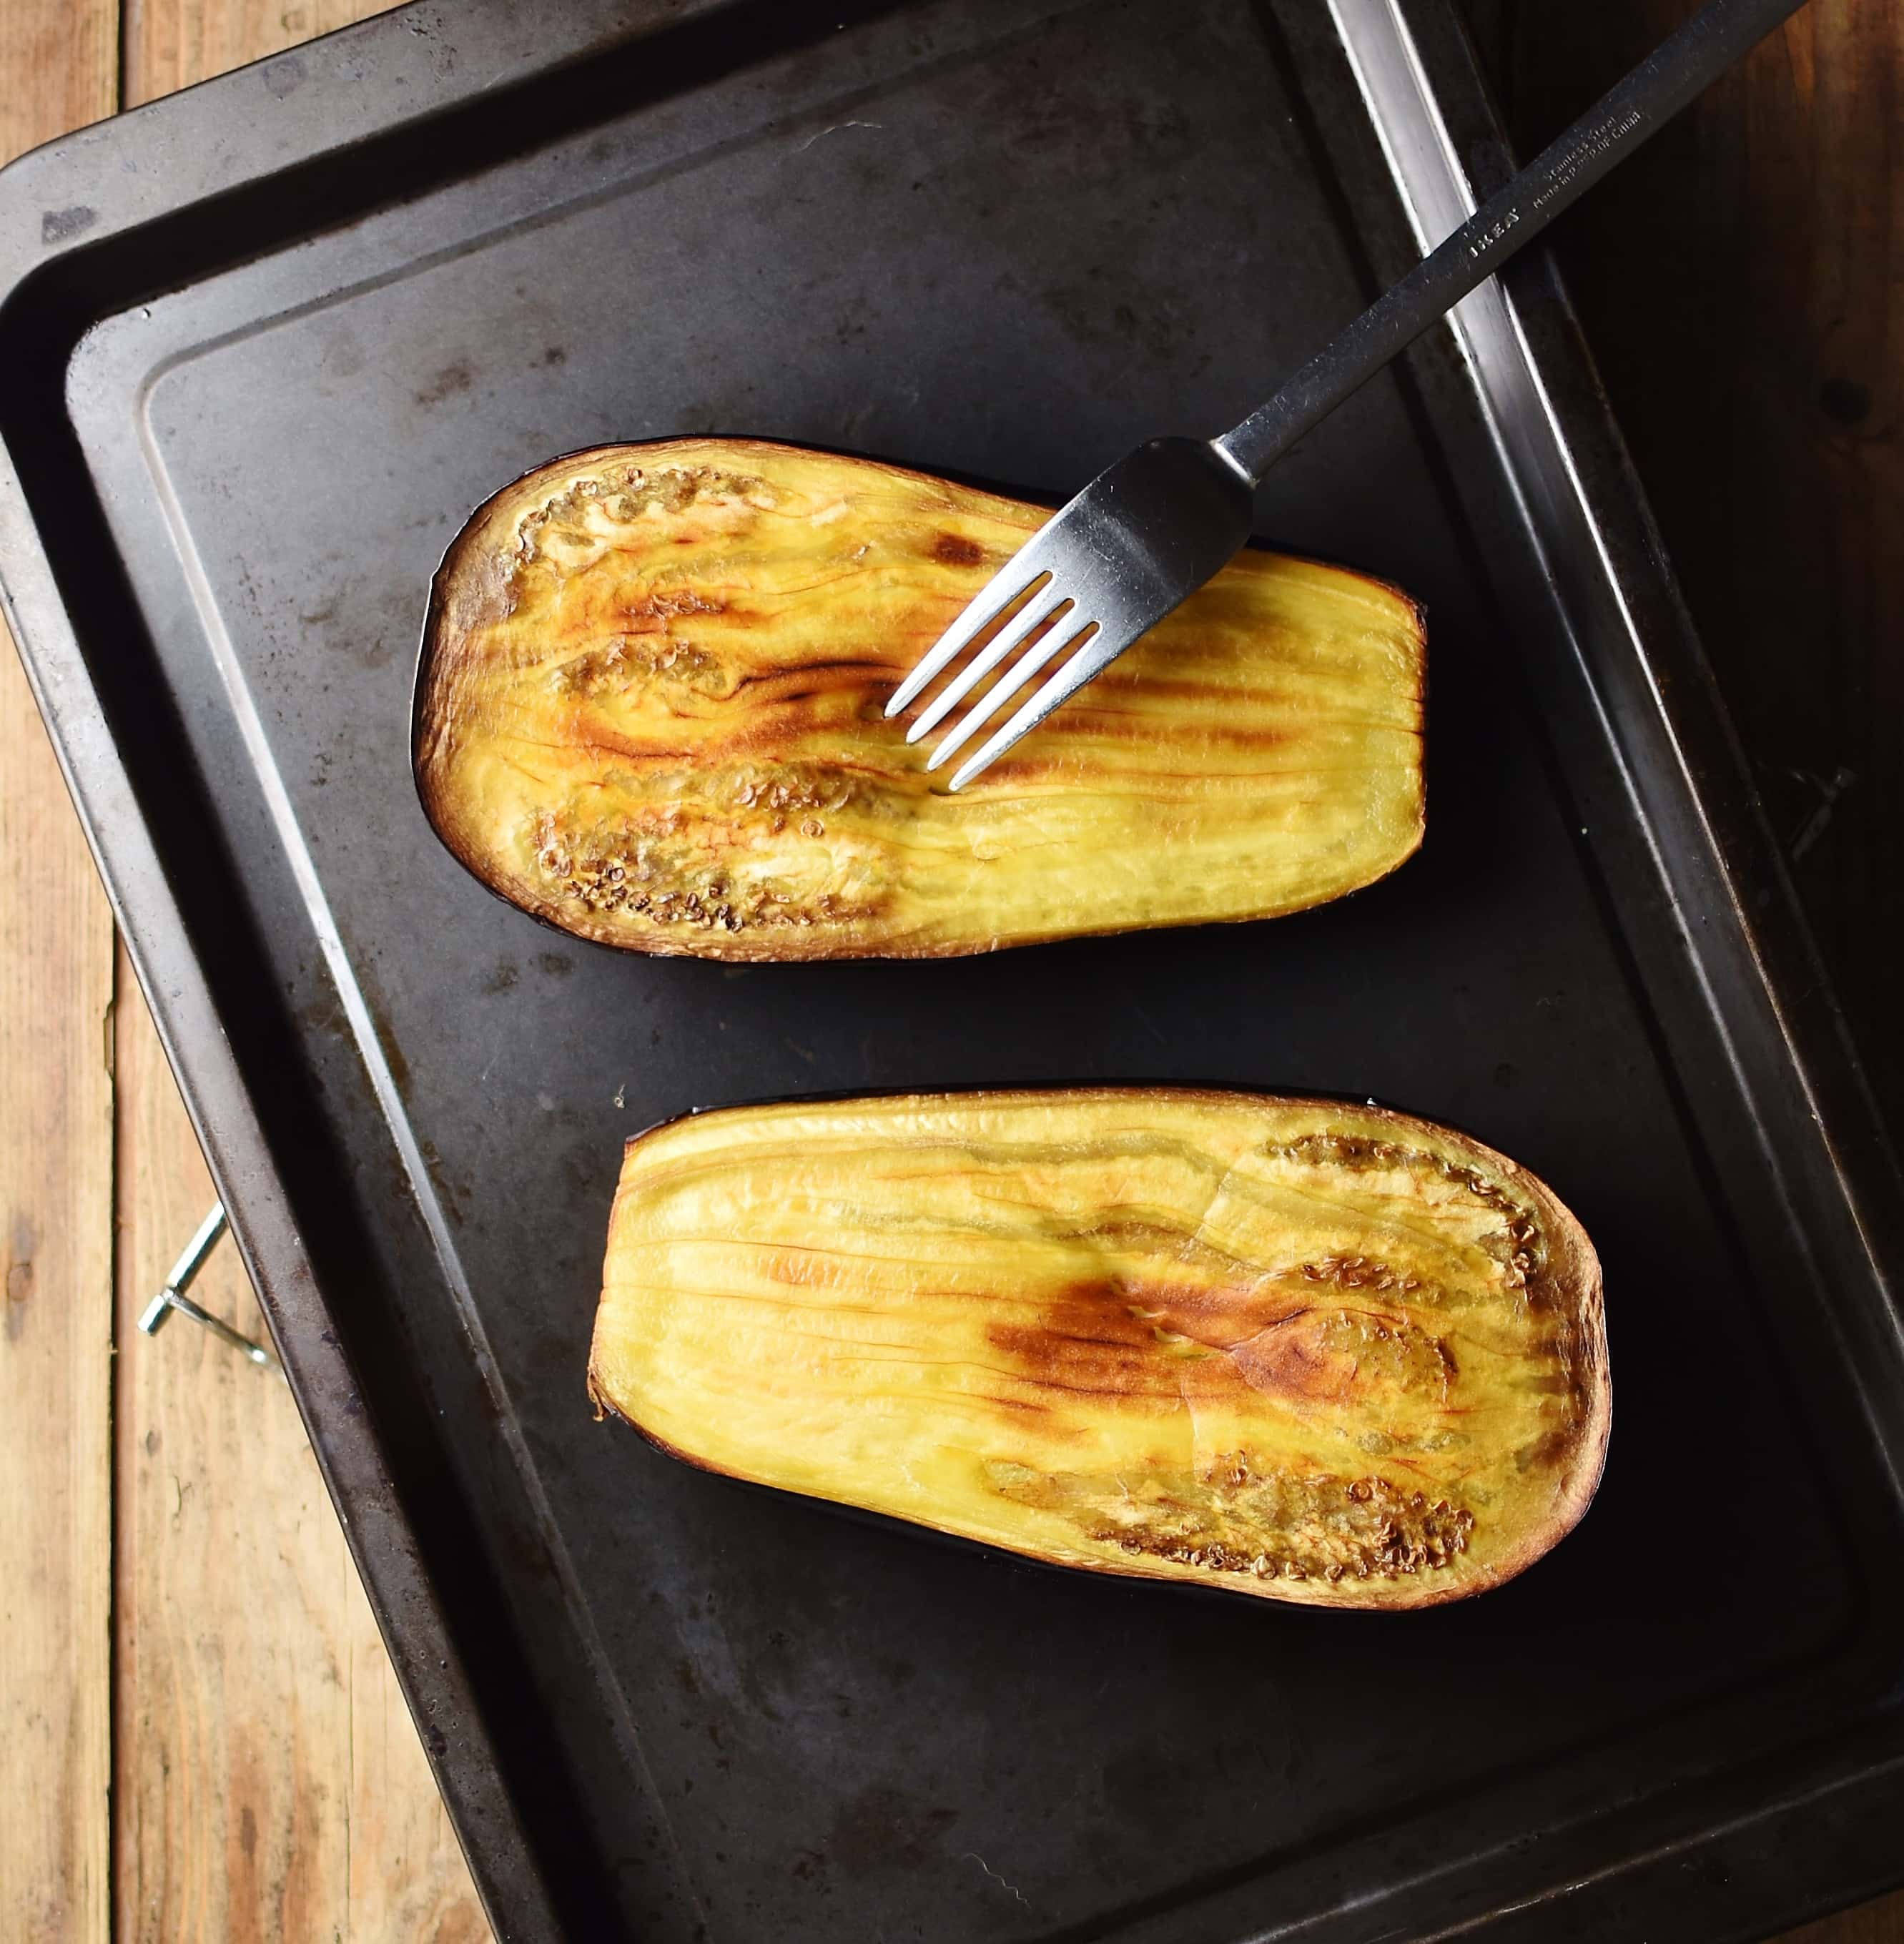 Roasted eggplant halves with fork on top of dark tray.